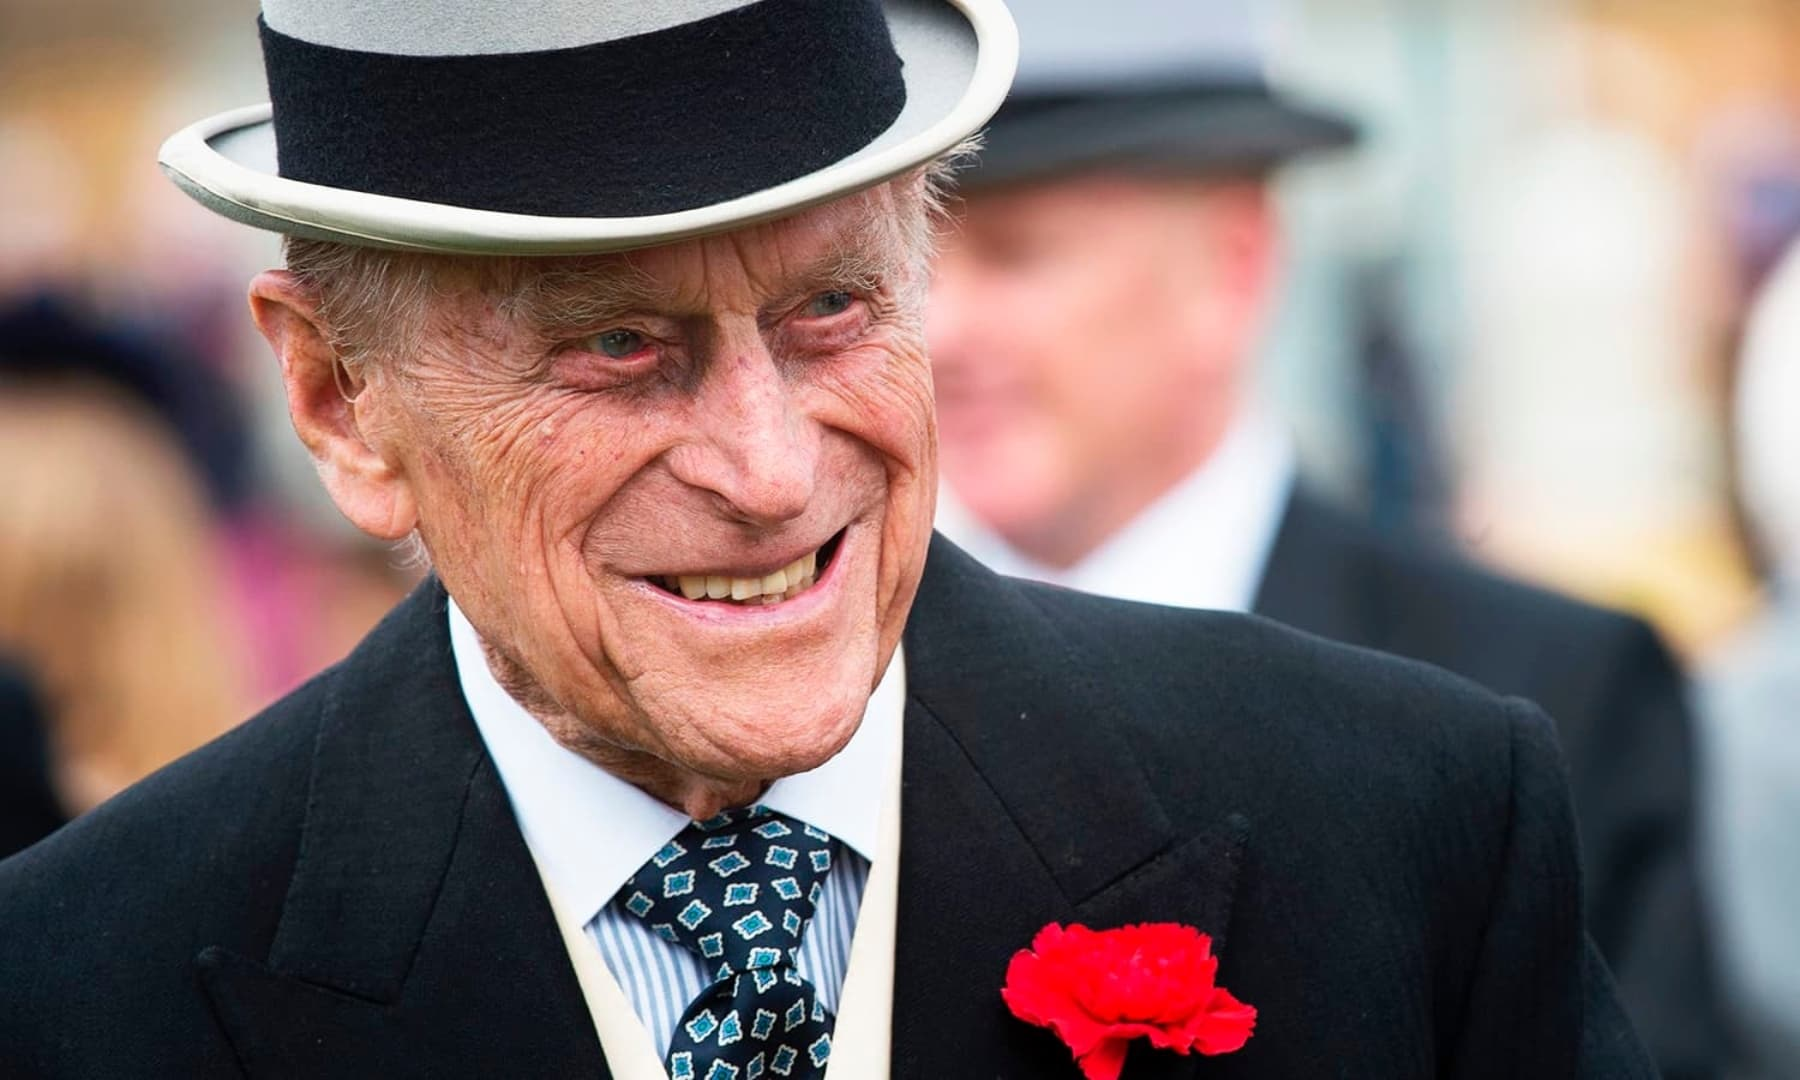 Britain's Prince Philip greets guests at a garden party at Buckingham Palace in London. — AFP/File